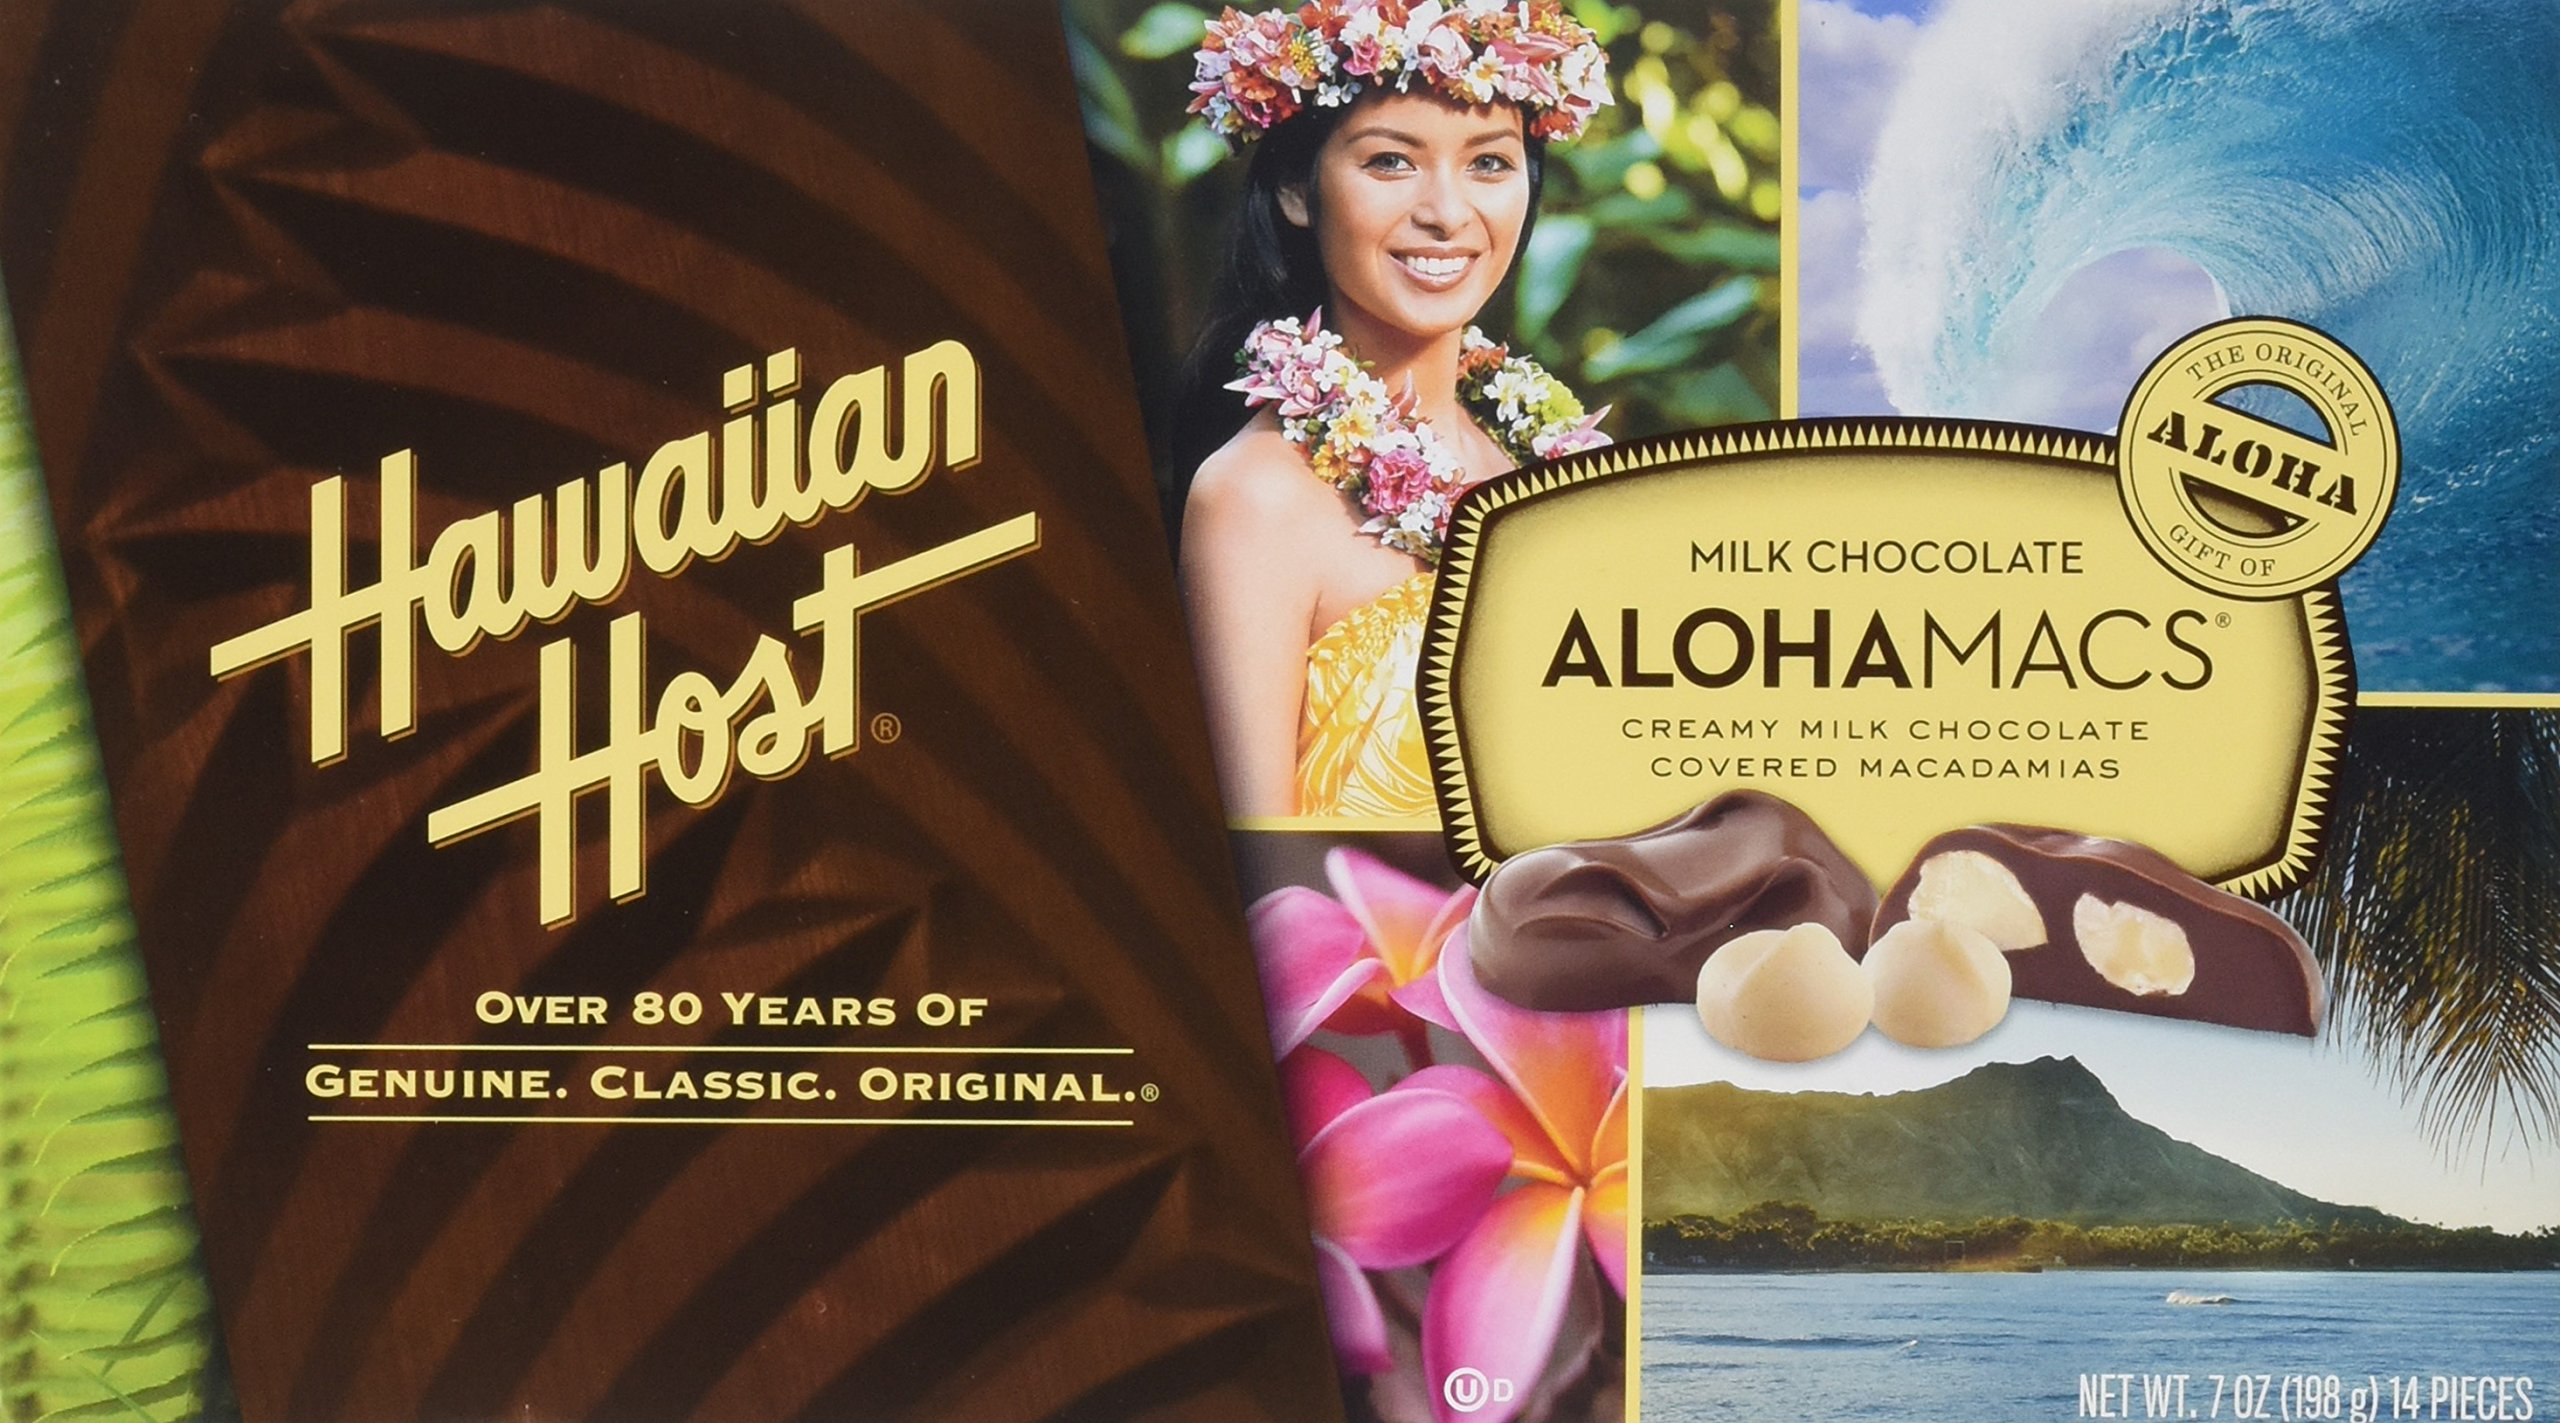 Hawaiian Host Aloha Macs Milk Chocolate Macadamia Nuts (7 ounce box, 14 pieces) (1 Box) by Hawaiian Host